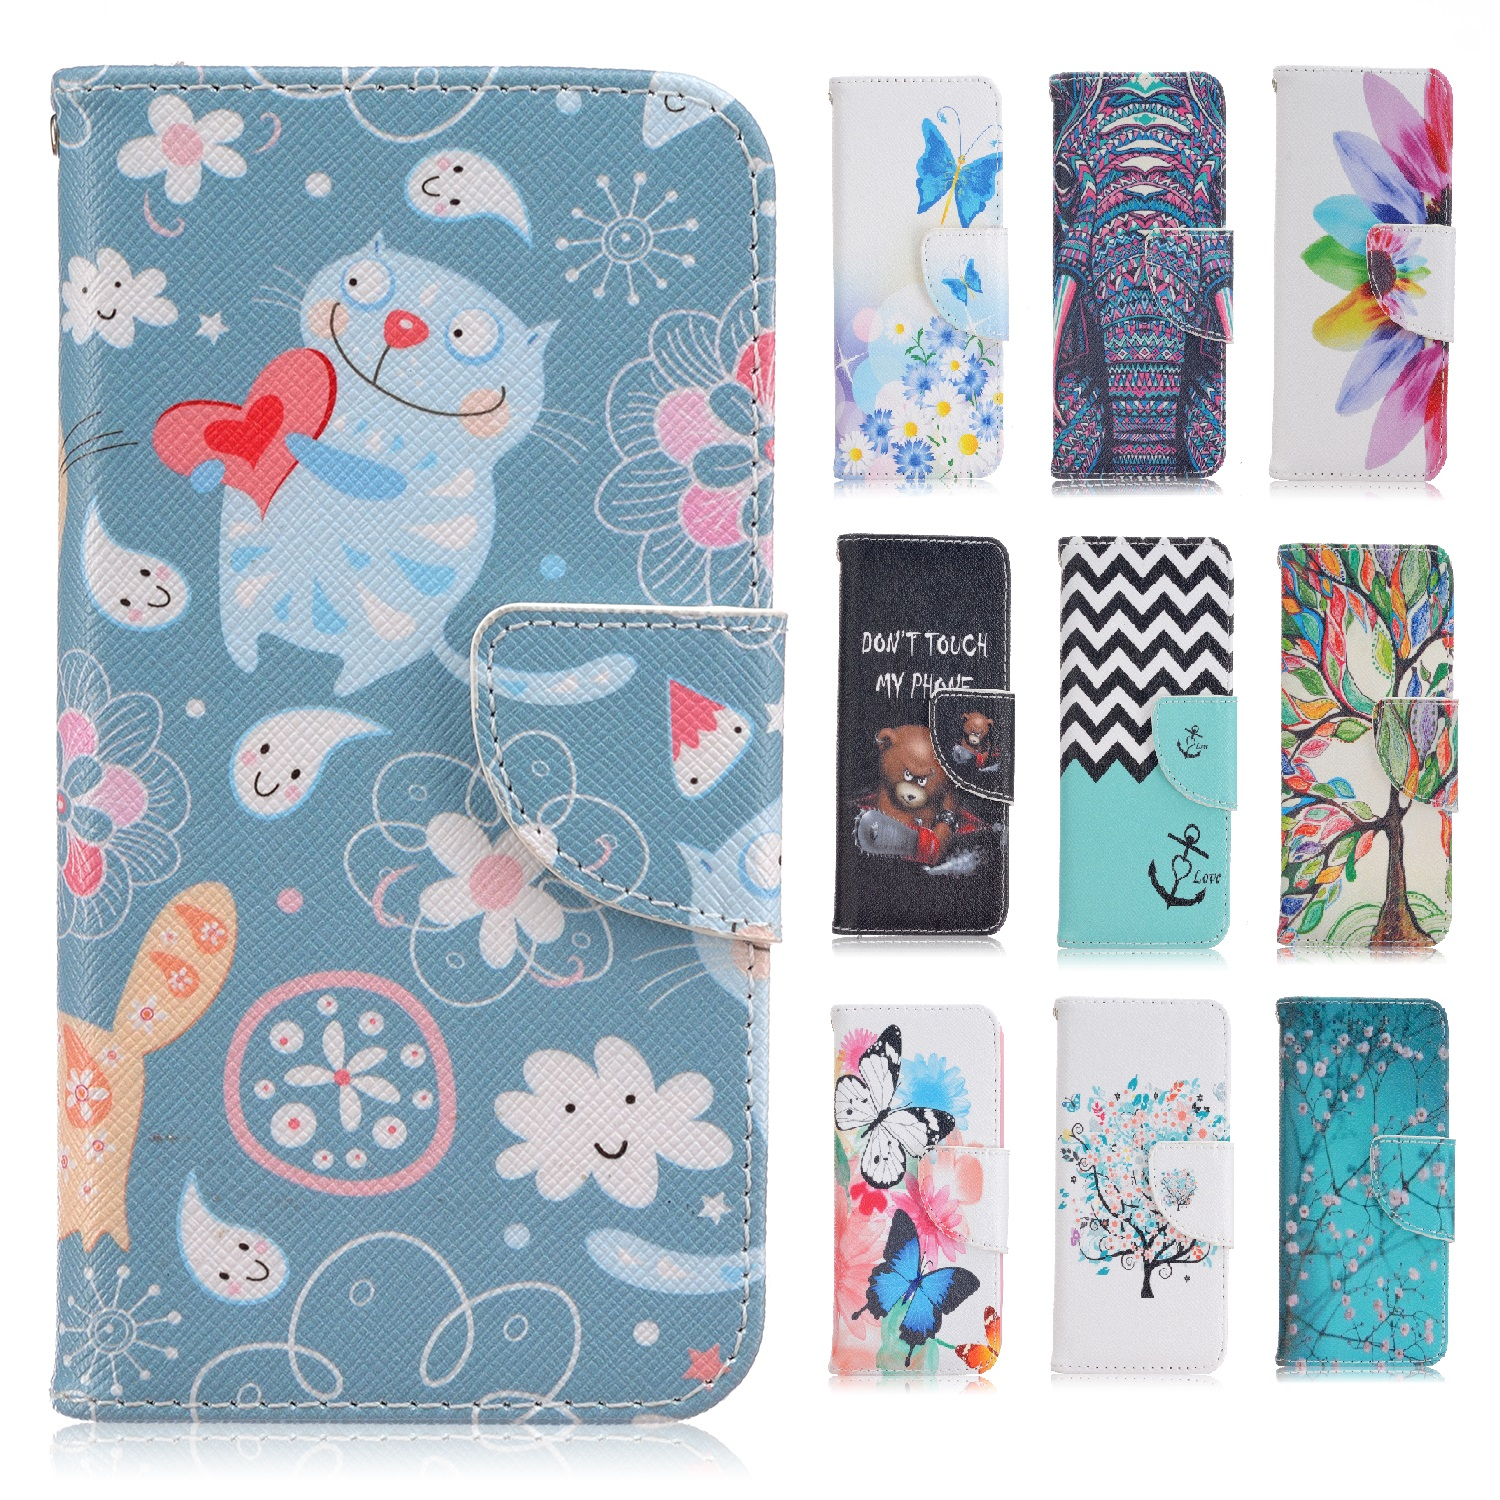 Cartoon Case For Huawei Gr5 Gr 5 Honor Play 5x Silikon Soft Lg V20 Nillkin Nature Ultrathin 06mm Original Leather Cover Flip Wallet Silicon Back Phone Accessory Coque